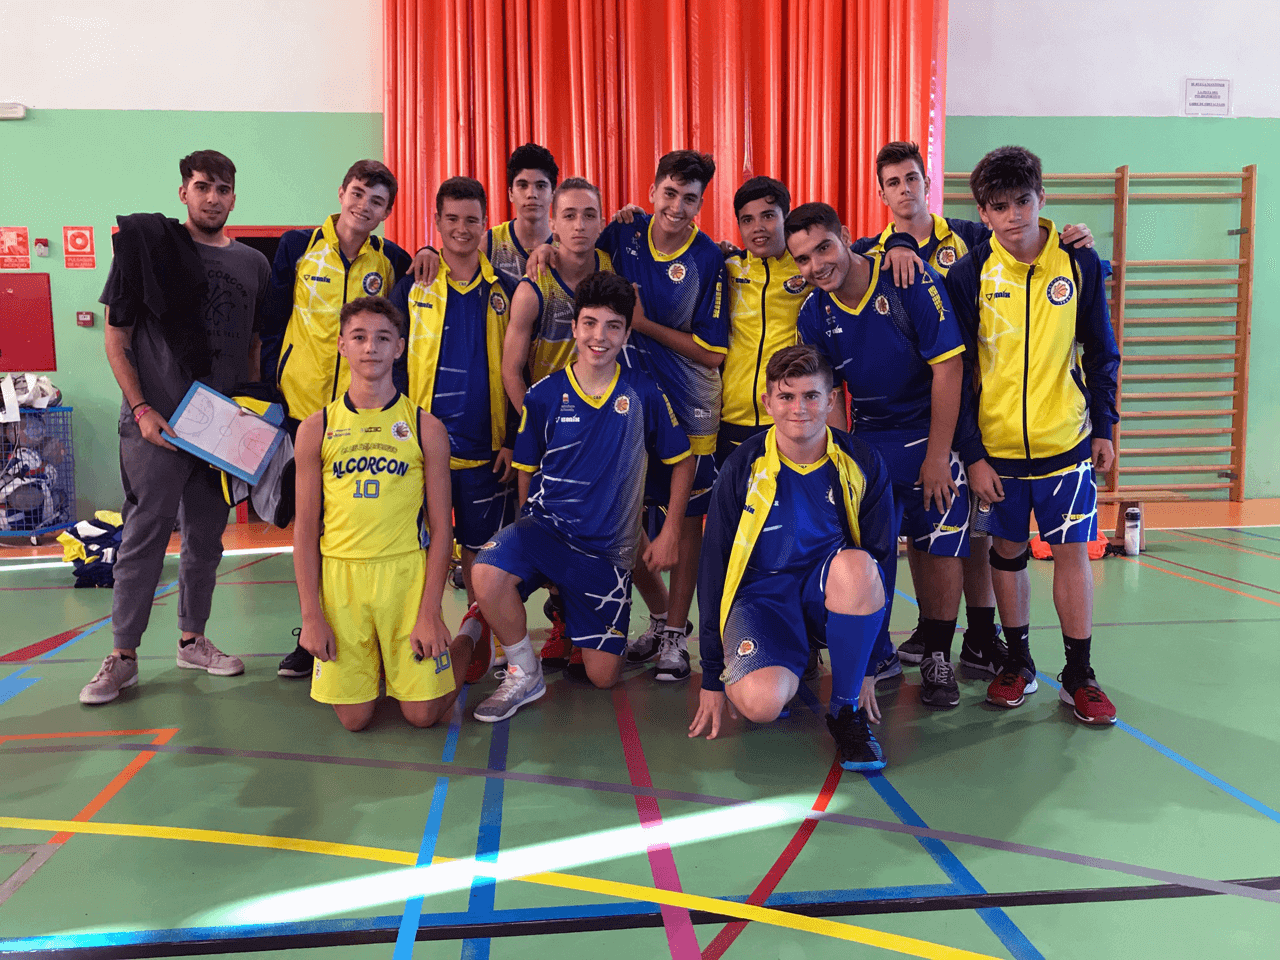 https://clubbaloncestoalcorcon.com/wp-content/uploads/2019/10/1-051019-GSDGUADARRAMA-1280-1.png